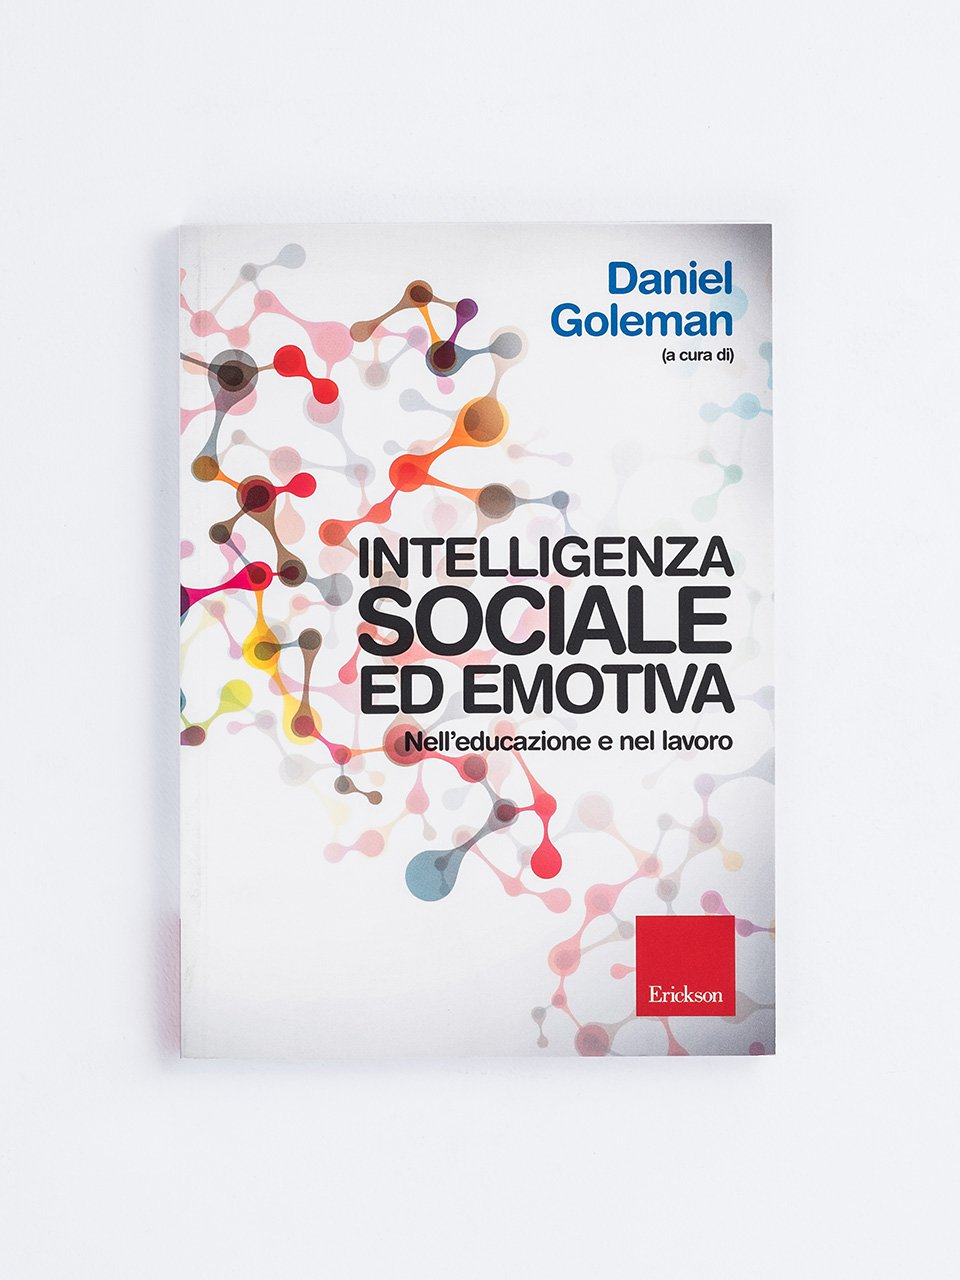 Intelligenza sociale ed emotiva - Sviluppare l'intelligenza emotiva - App e software - Erickson